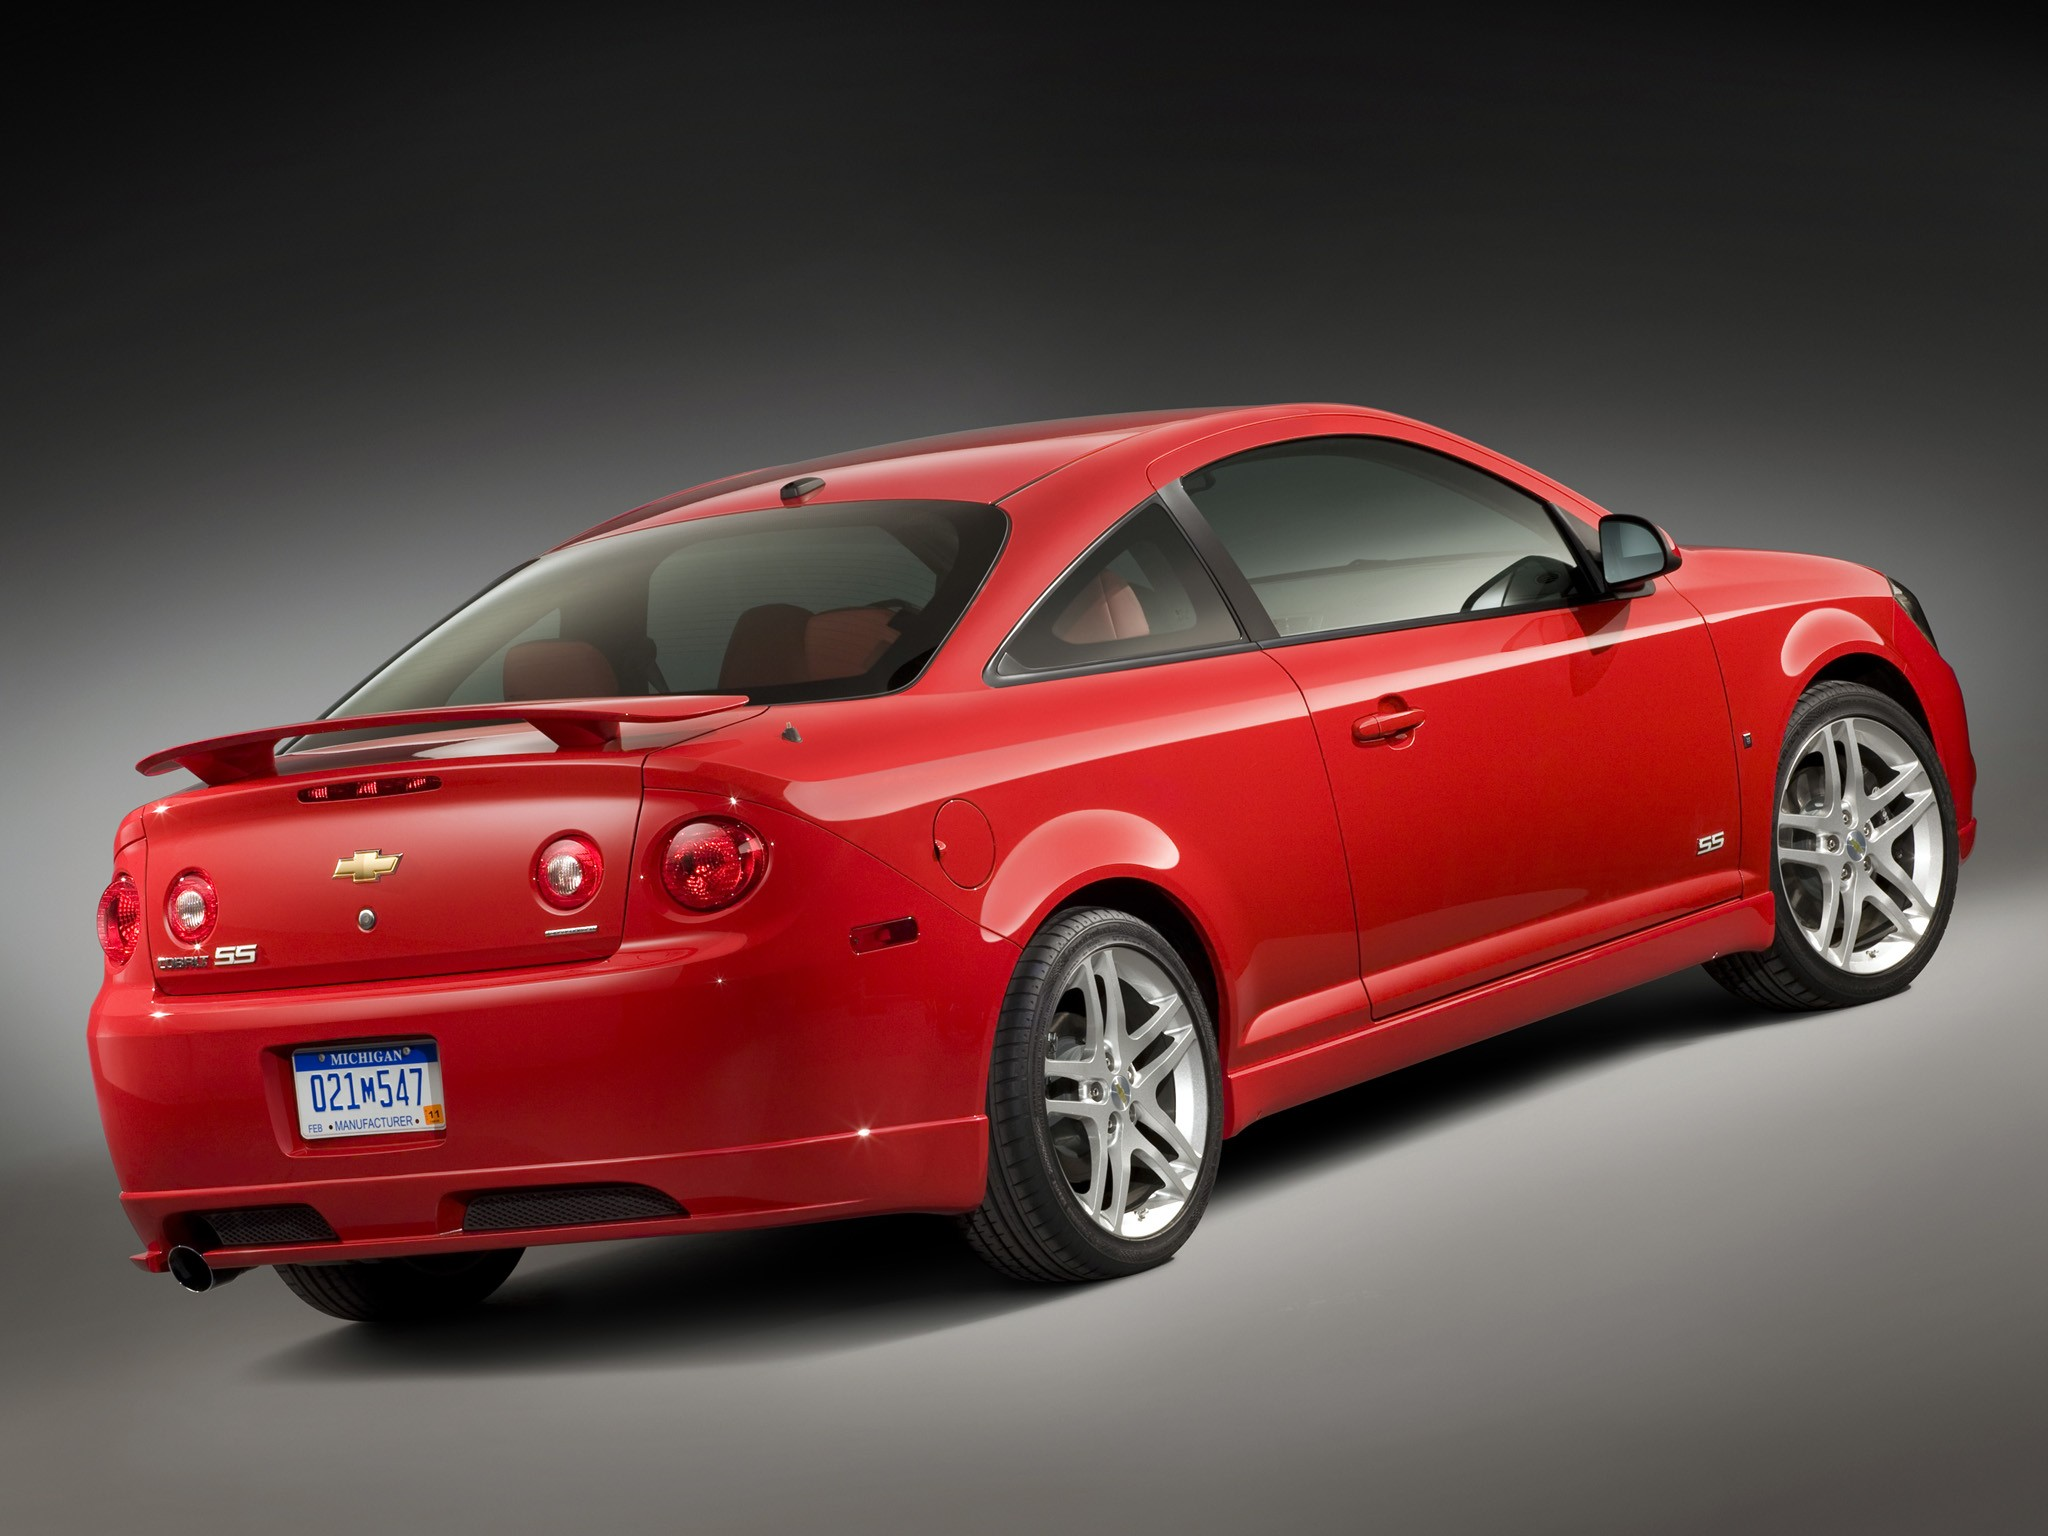 chevrolet cobalt coupe ss specs 2008 2009 2010 2011. Black Bedroom Furniture Sets. Home Design Ideas